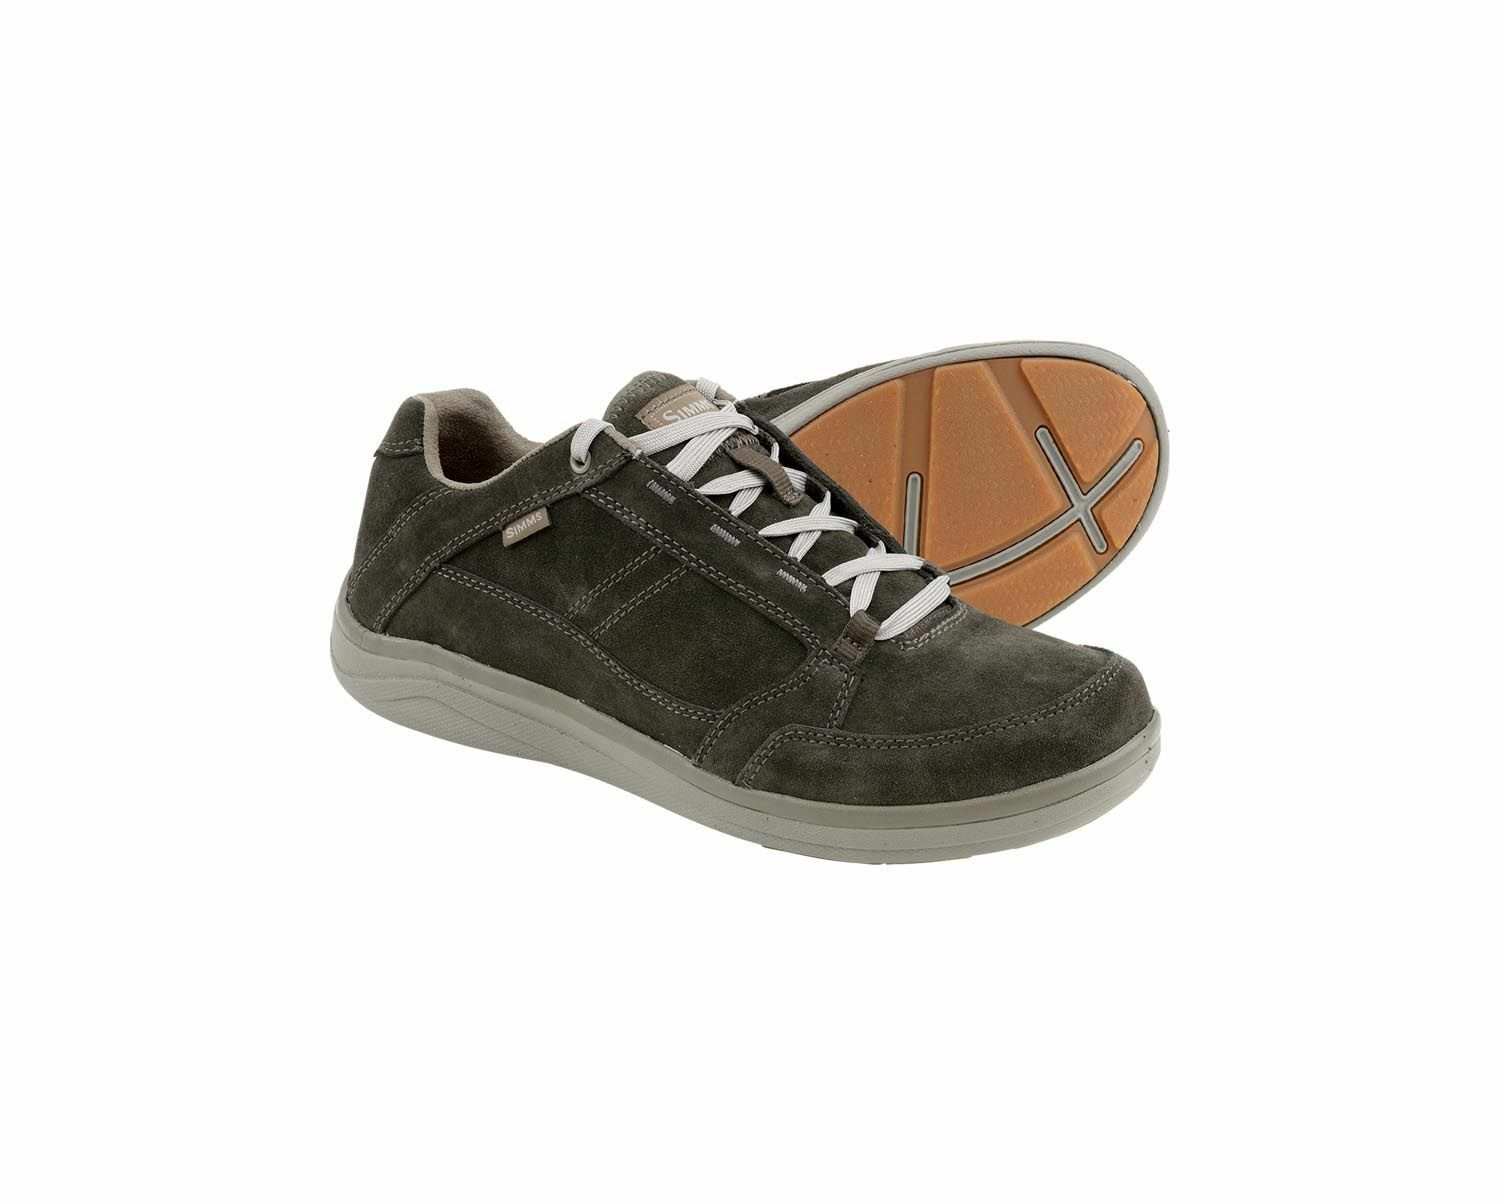 Simms Westshore Leather shoes Dark Olive  - Size 10 -CLOSEOUT  70% off